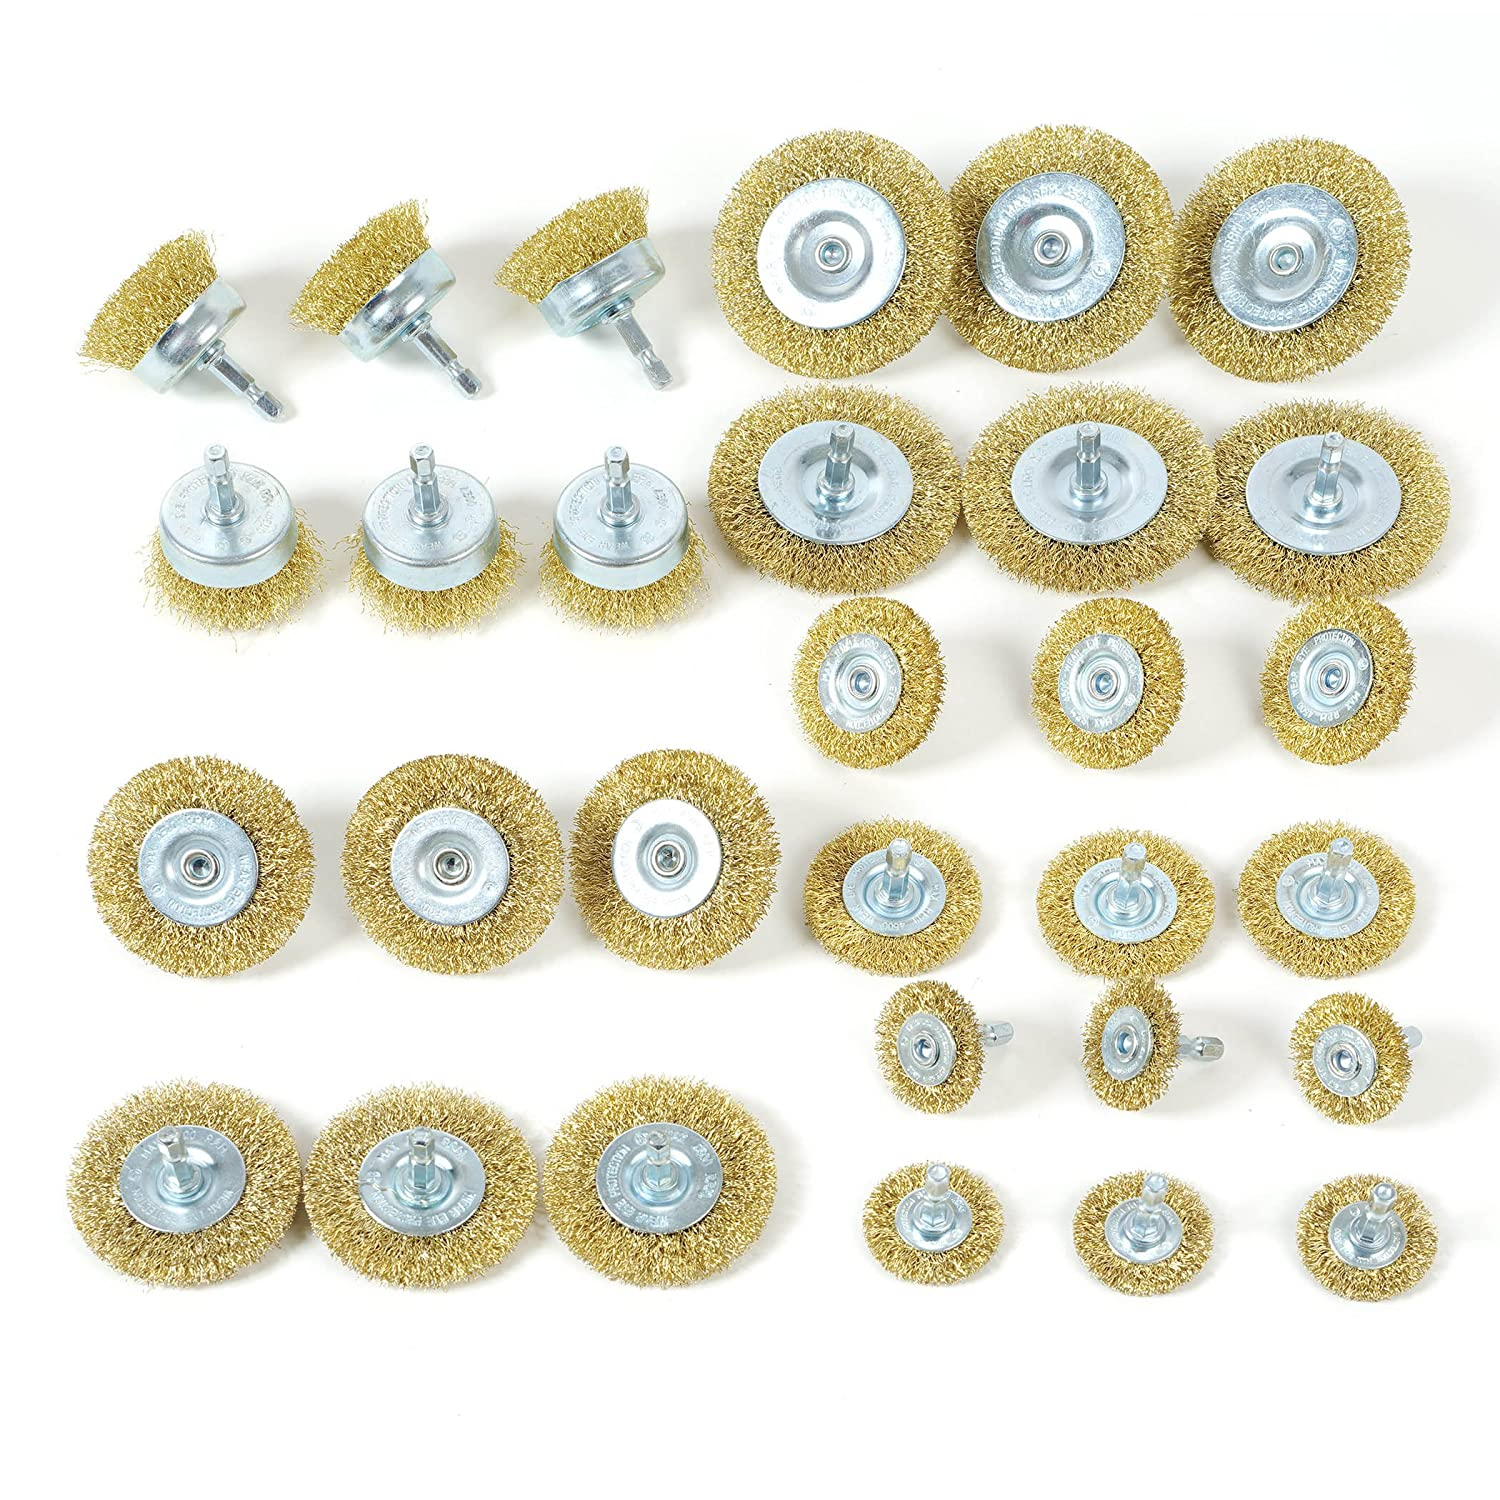 WORKPRO Wire Brush Wheels, 30-piece Cup Brush Set with 1/4-Inch Hex Shank HANZGHOU GREATSTAR INDUSTRIAL CO.LTD W124040A